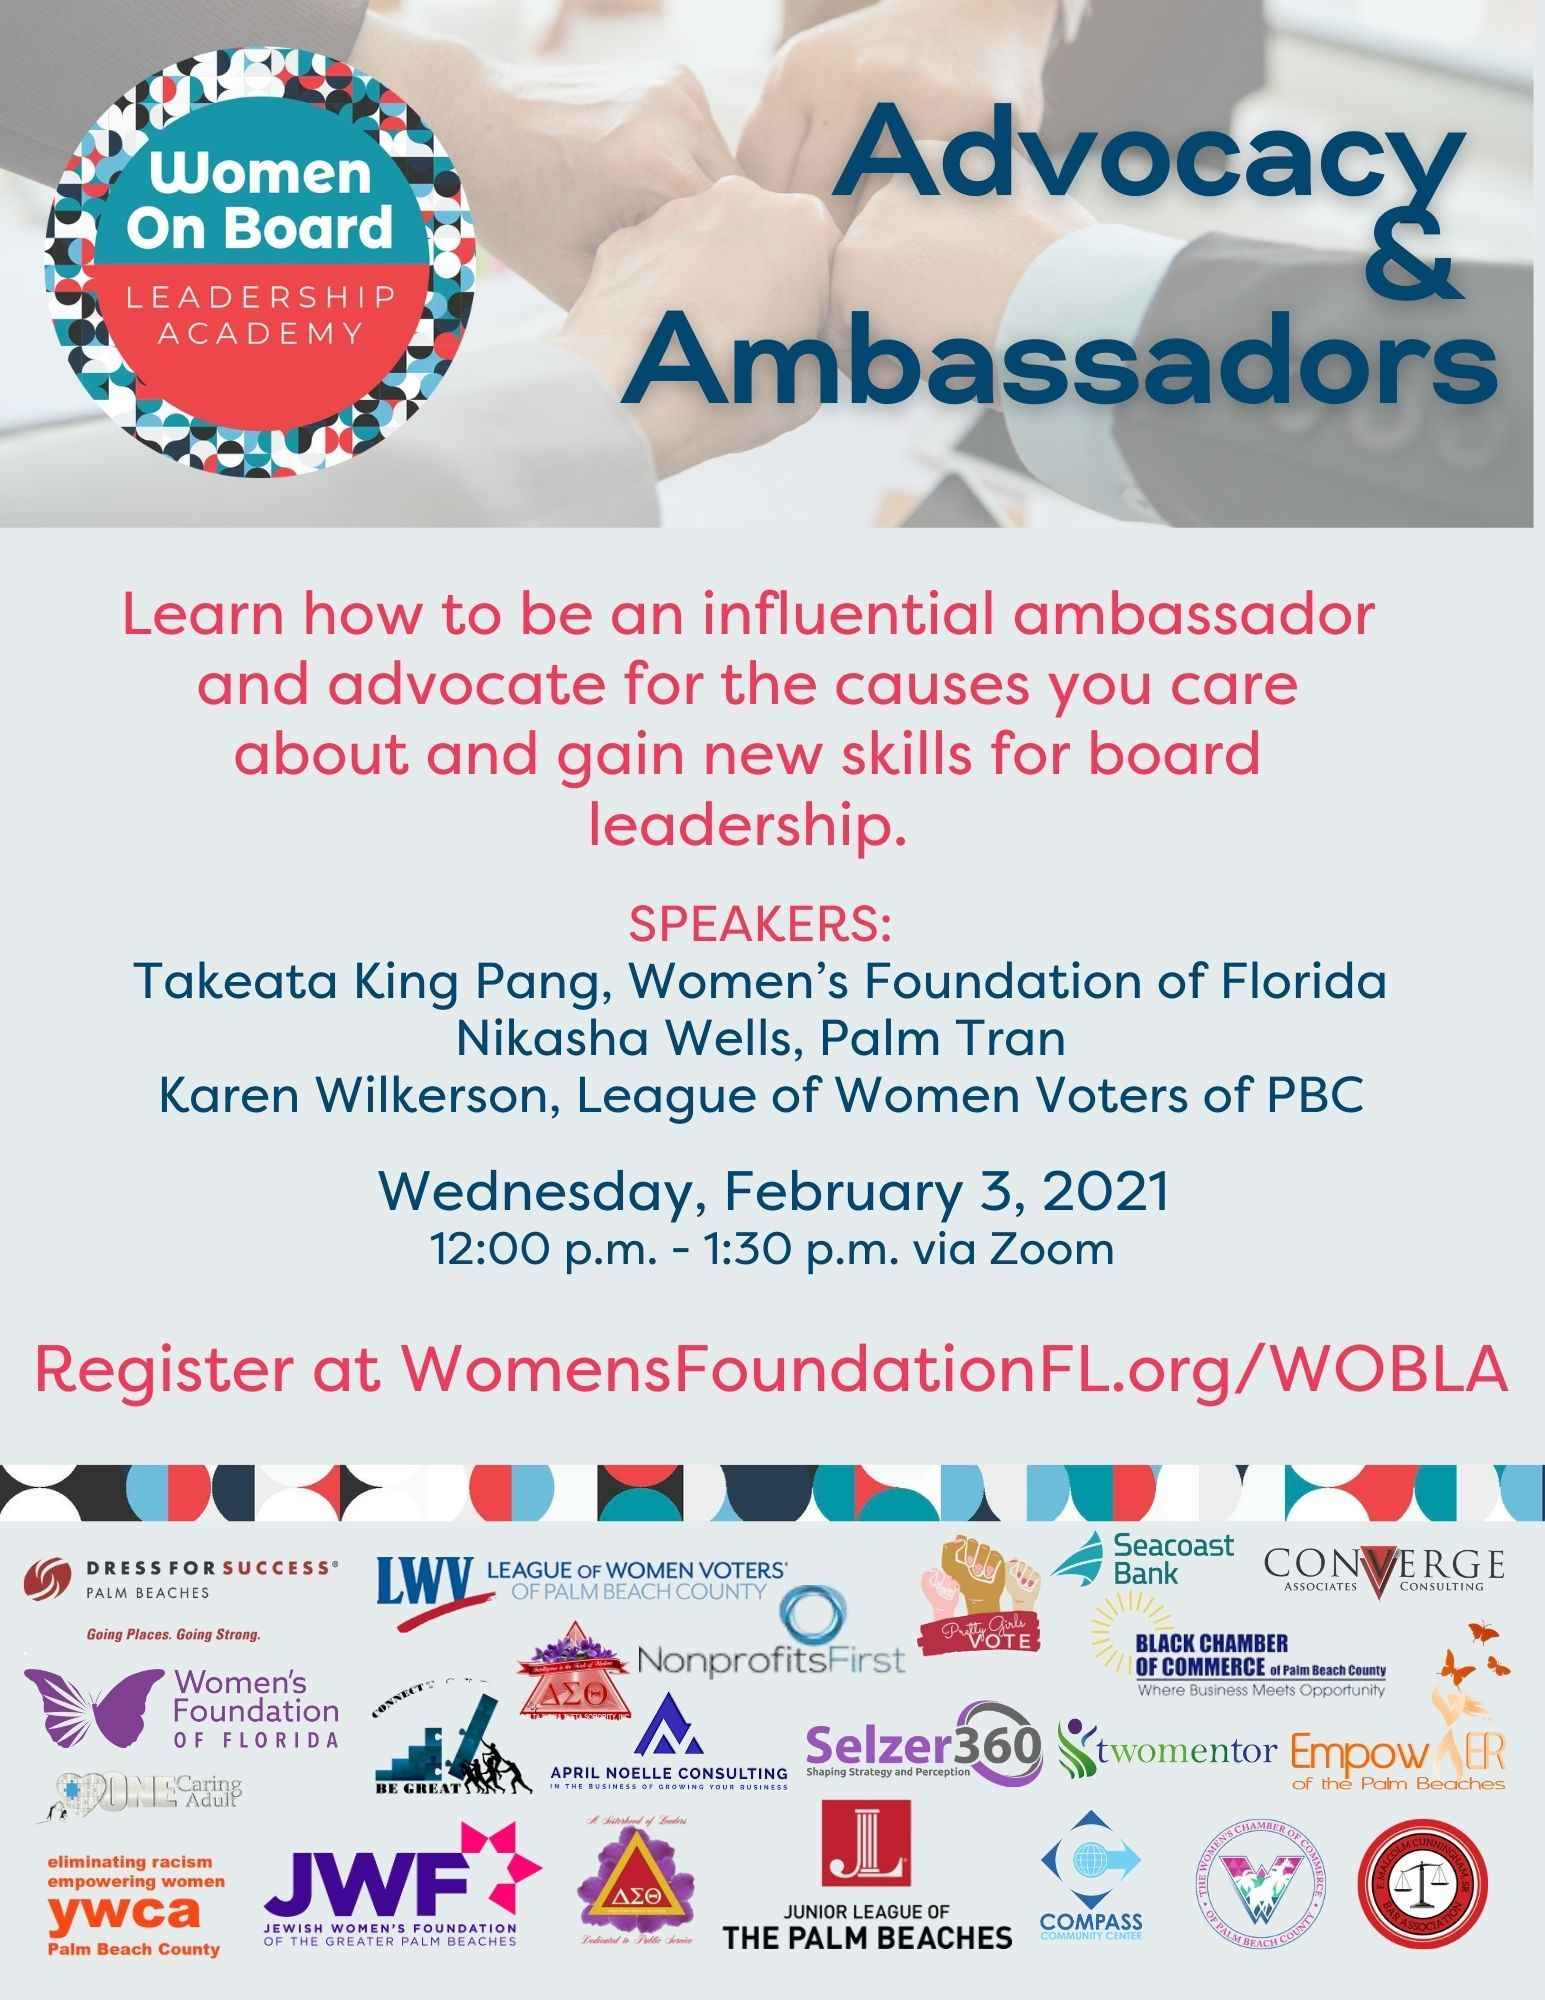 Women on Board Leadership Academy - Advocacy and Ambassadors image